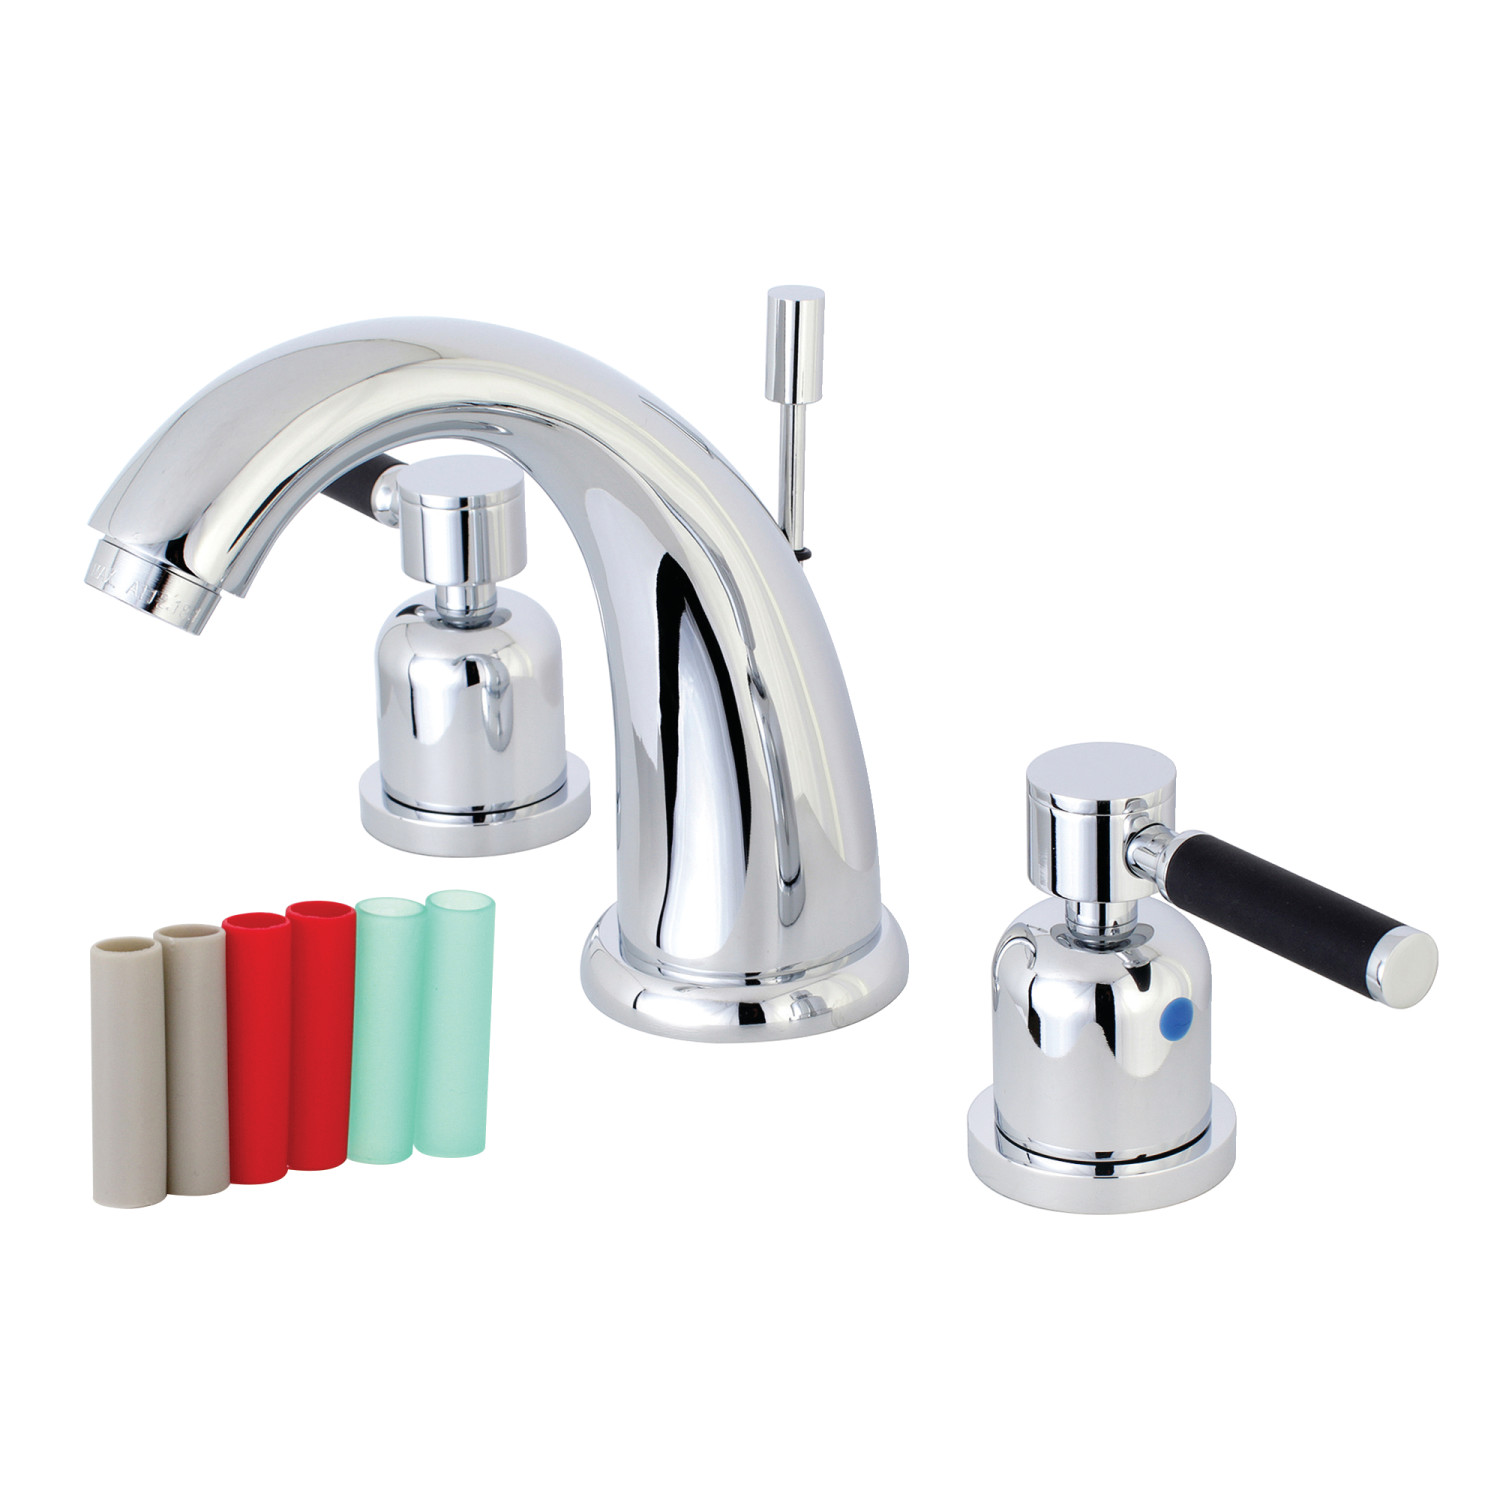 Modern Two-Handle 3-Hole Deck Mounted Widespread Bathroom Faucet with Plastic Pop-Up in Polished Chrome Finish